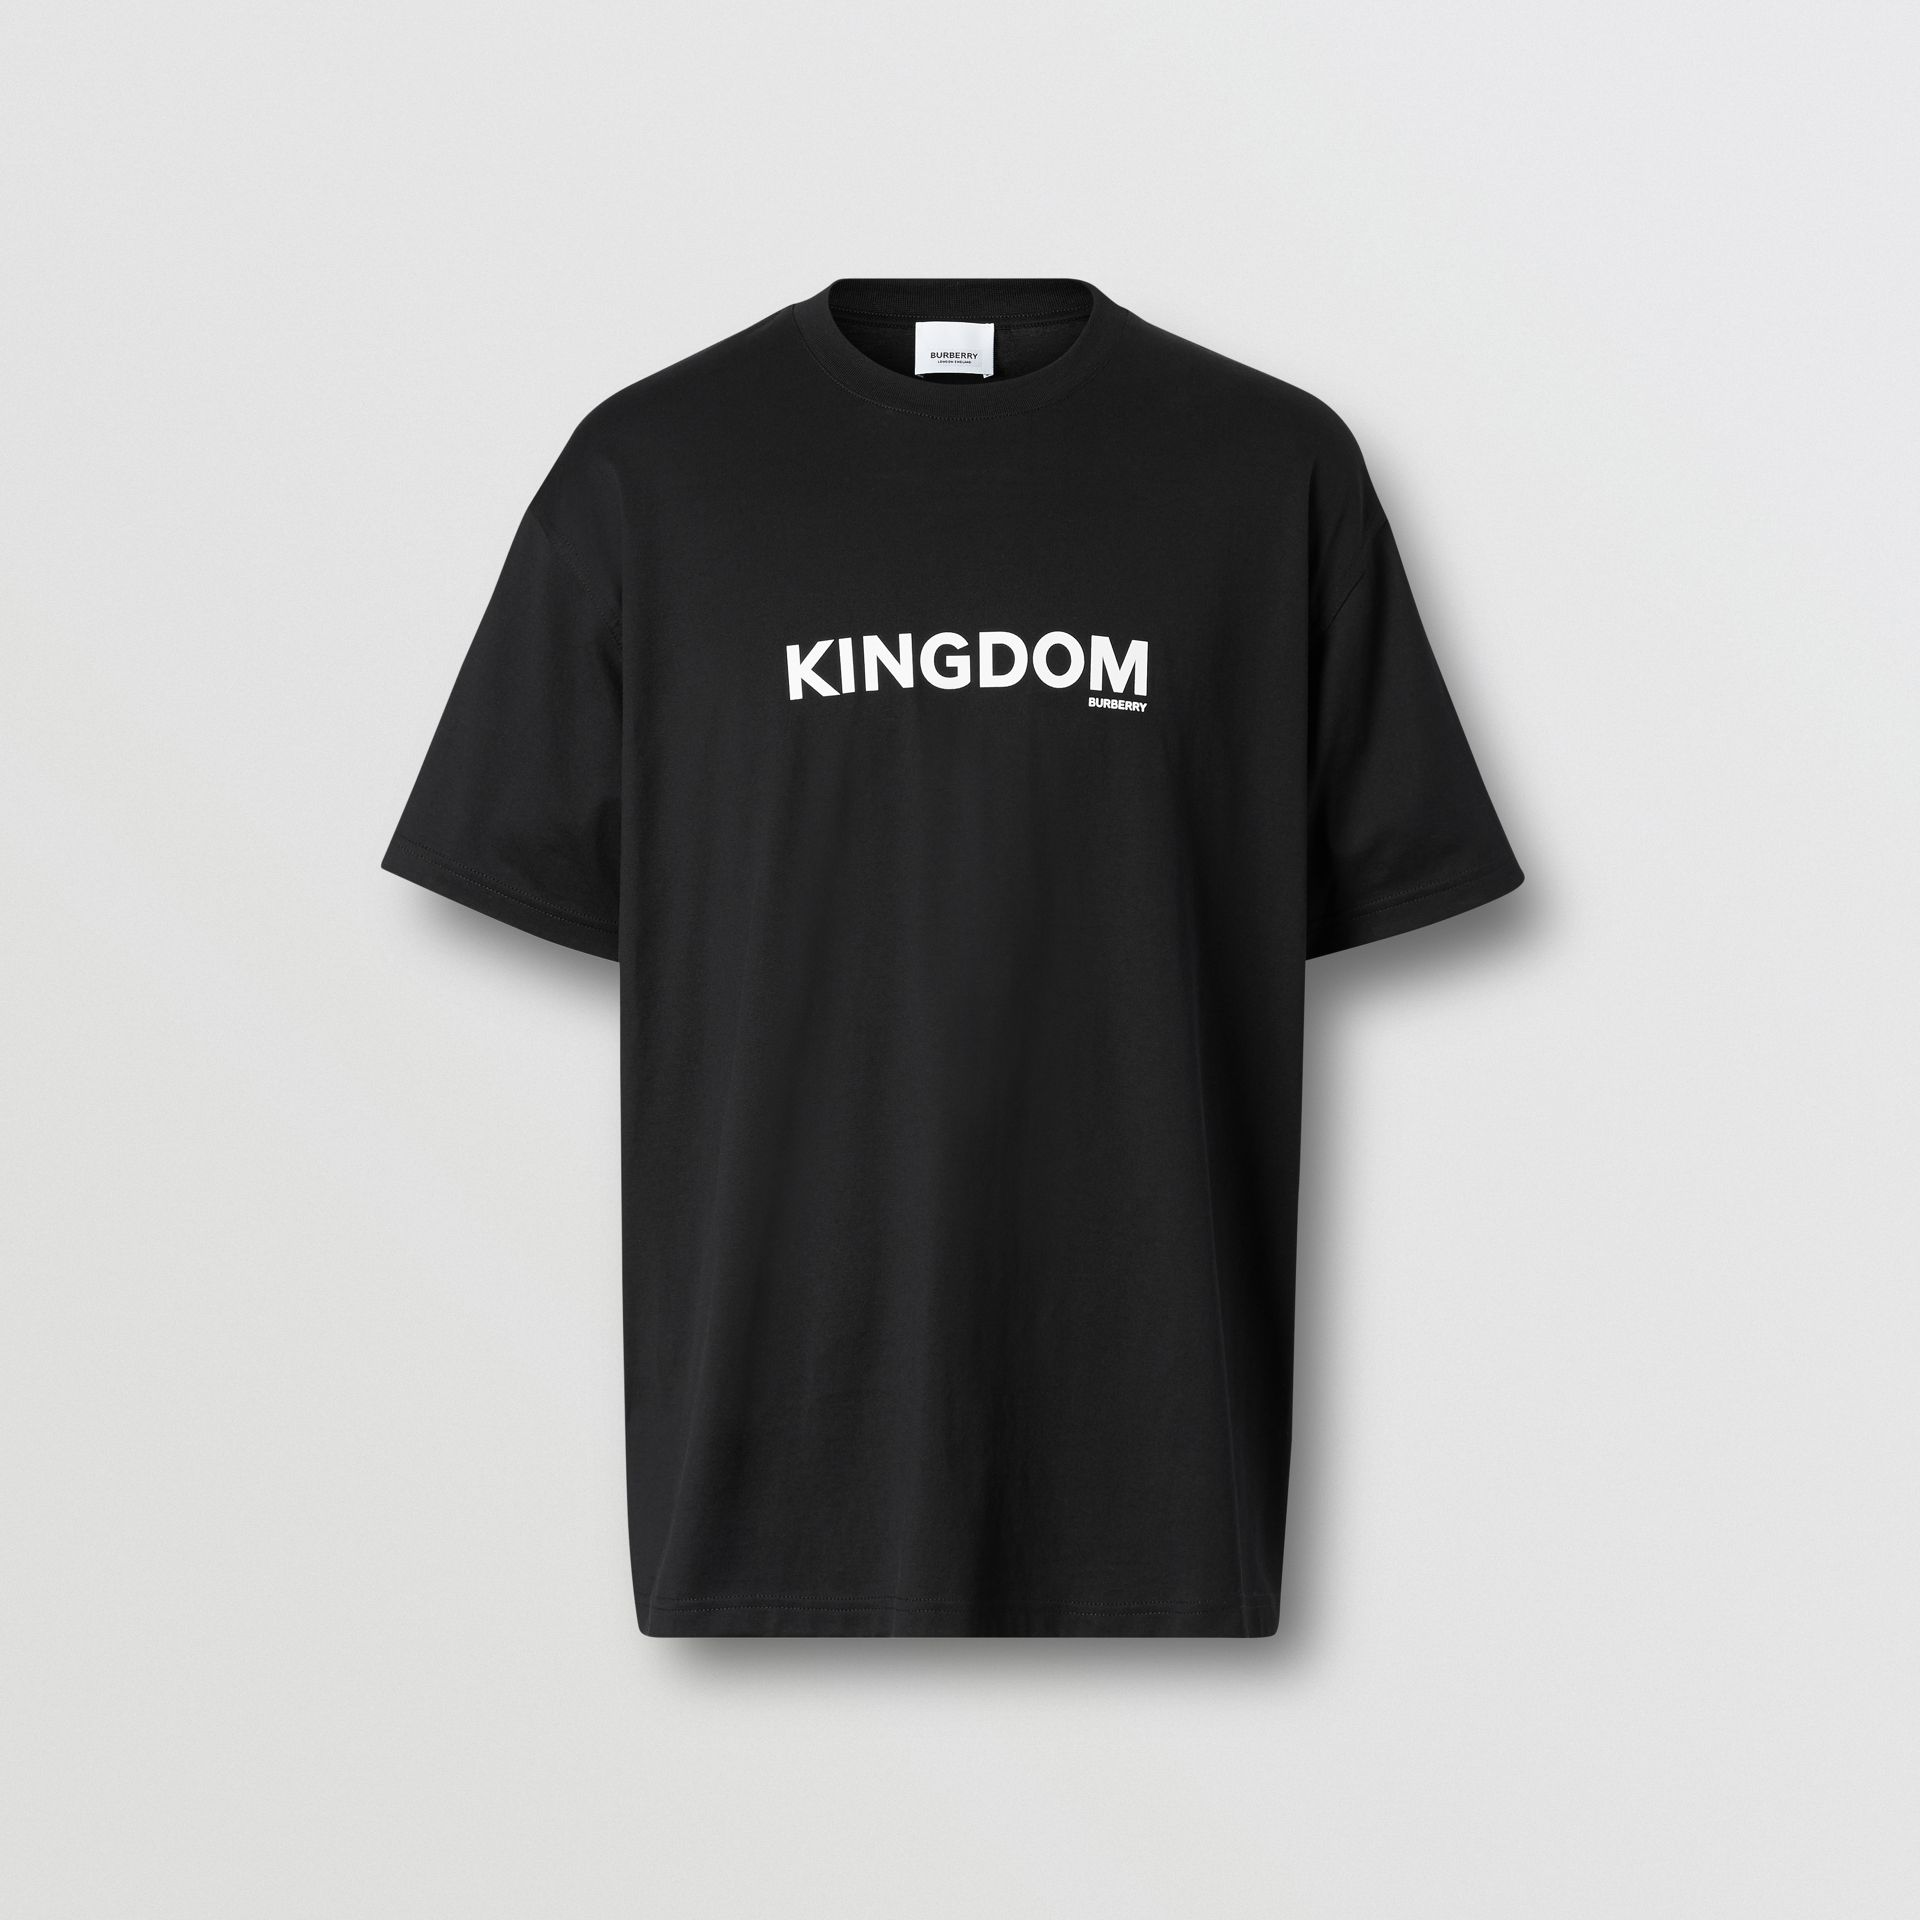 Kingdom Print Cotton T-shirt in Black - Men | Burberry - gallery image 3